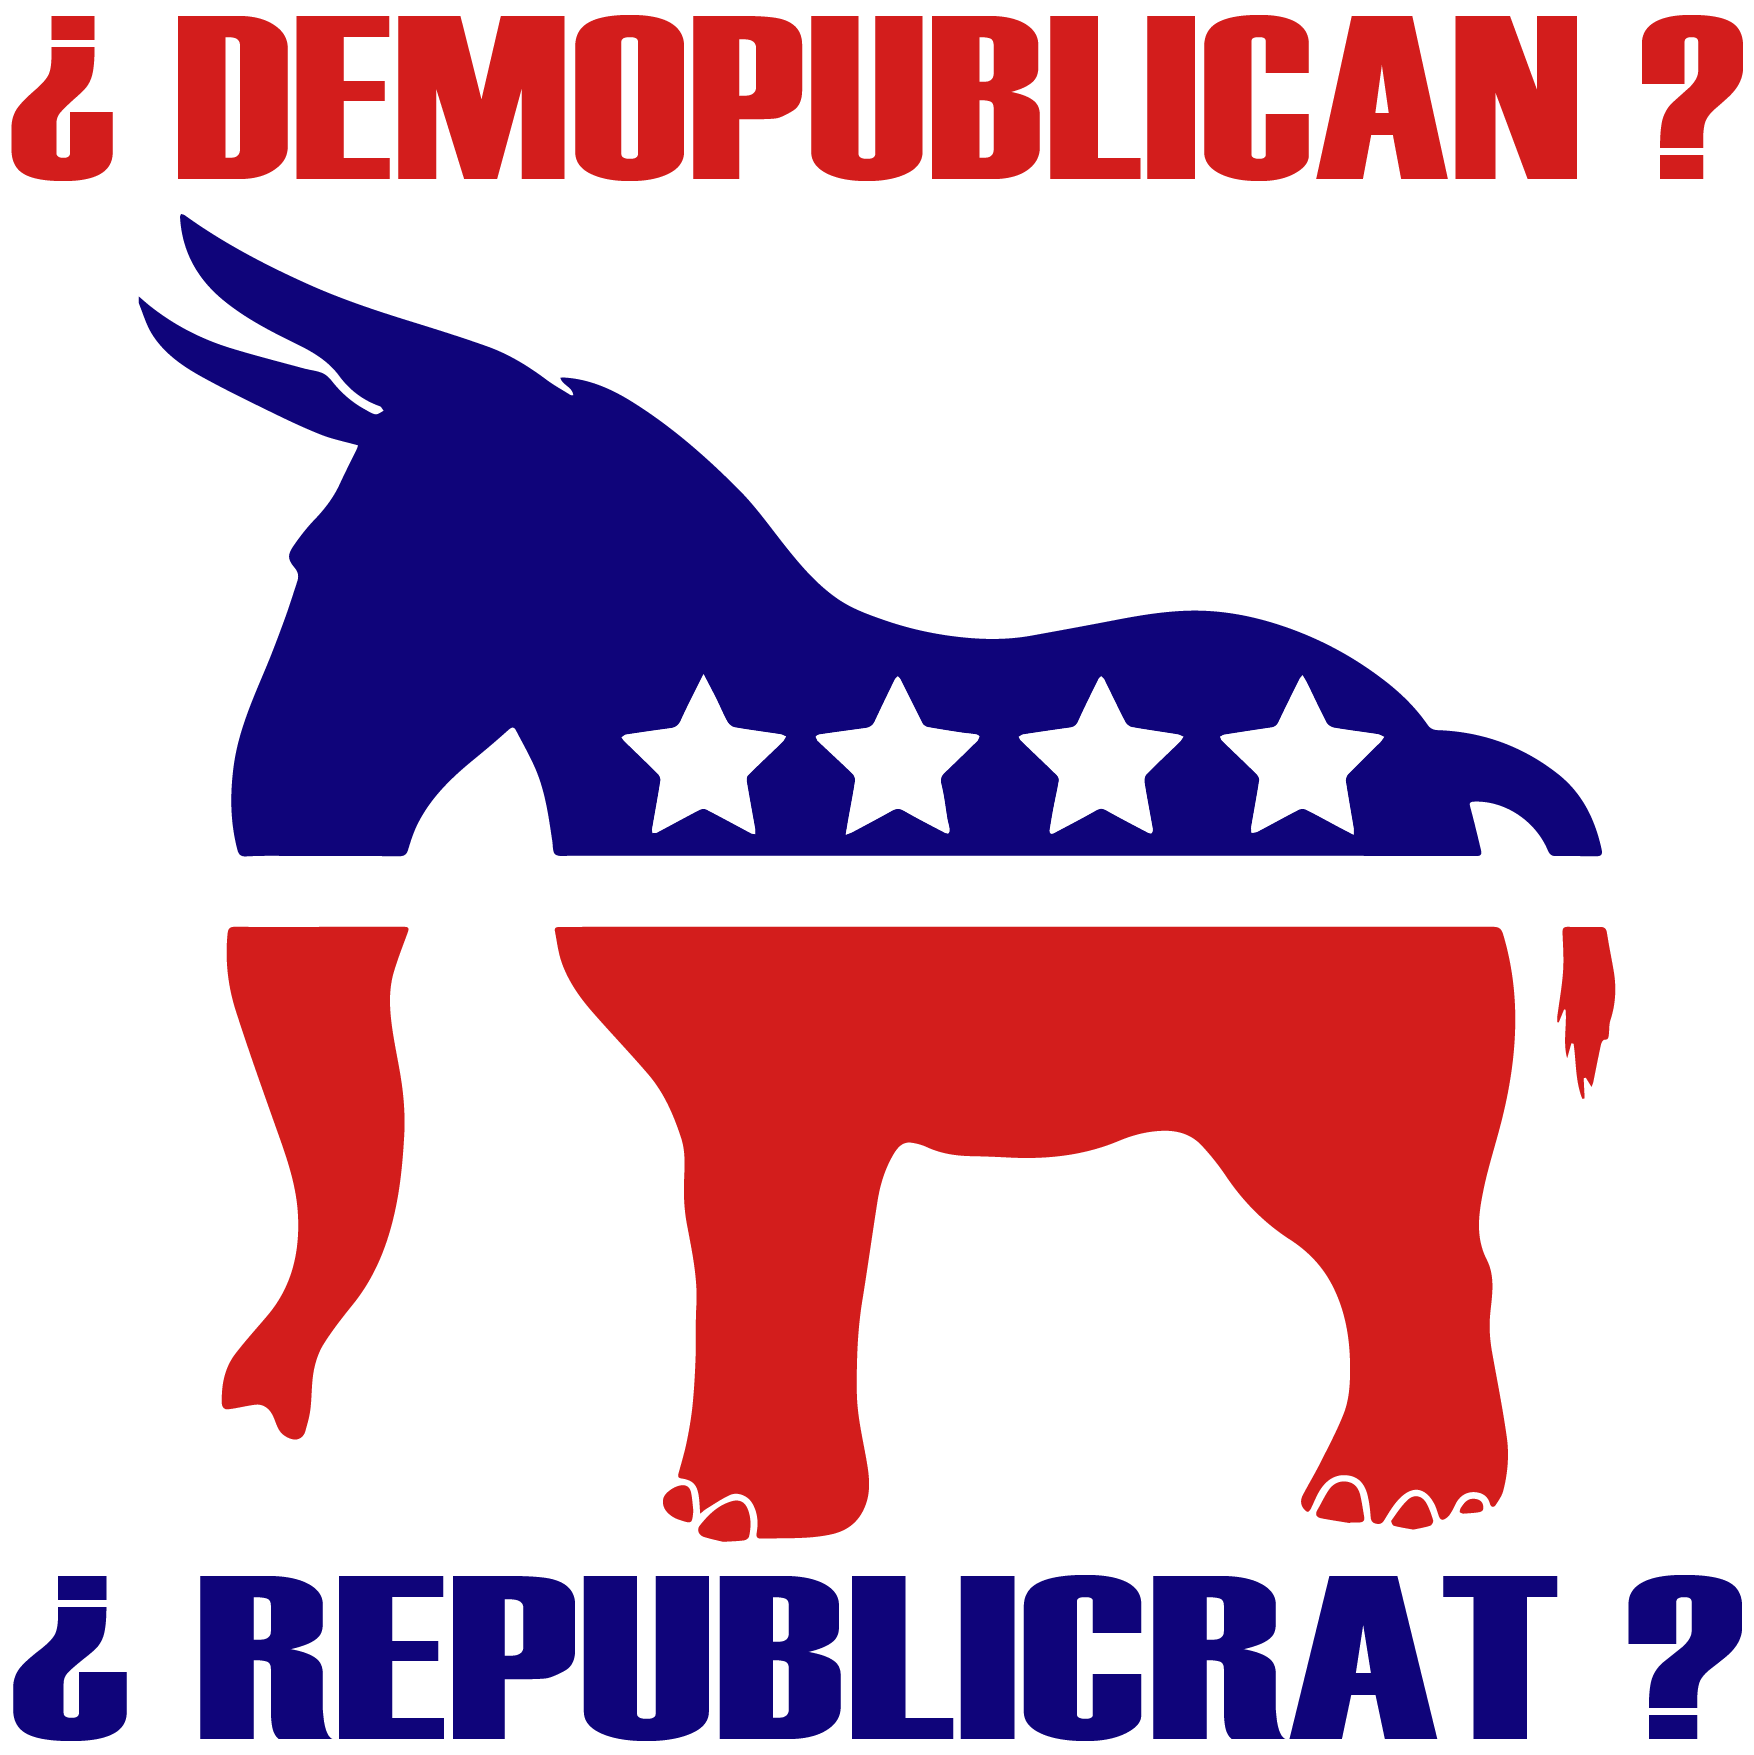 demopublican_republicrat_usa_split_divided_nation_failing_state_kritisches_netzwerk_republican_democratic_party_republicans_republikaner_demokraten_democrats_america_first_trump.png